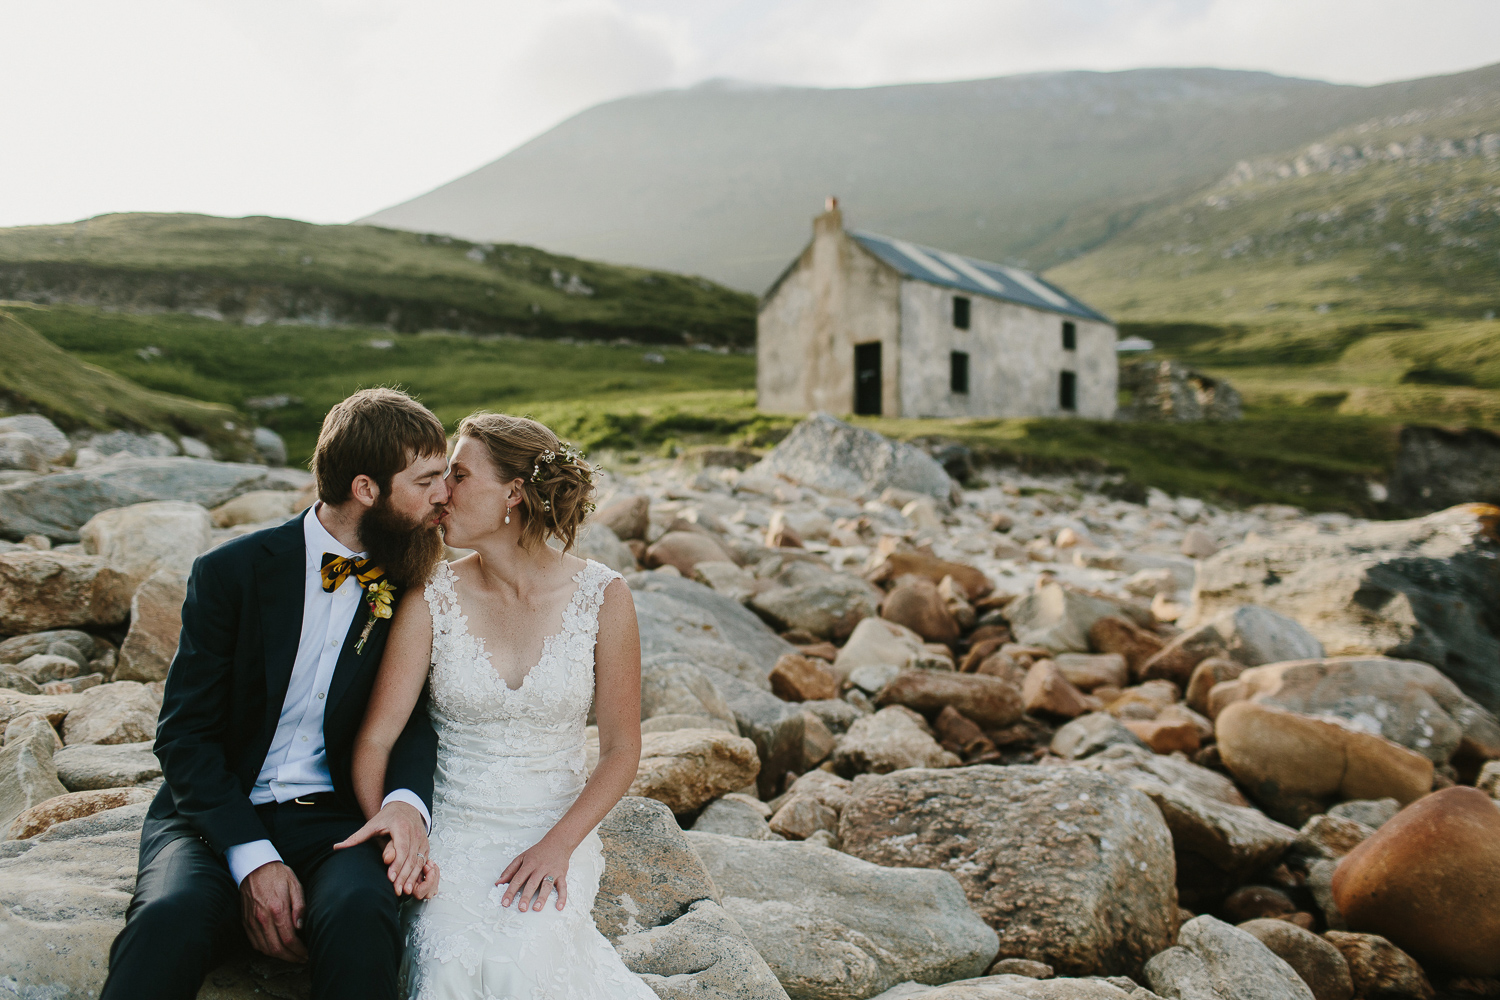 Achill-Island-Adventure-Wedding-Photographer-301.jpg